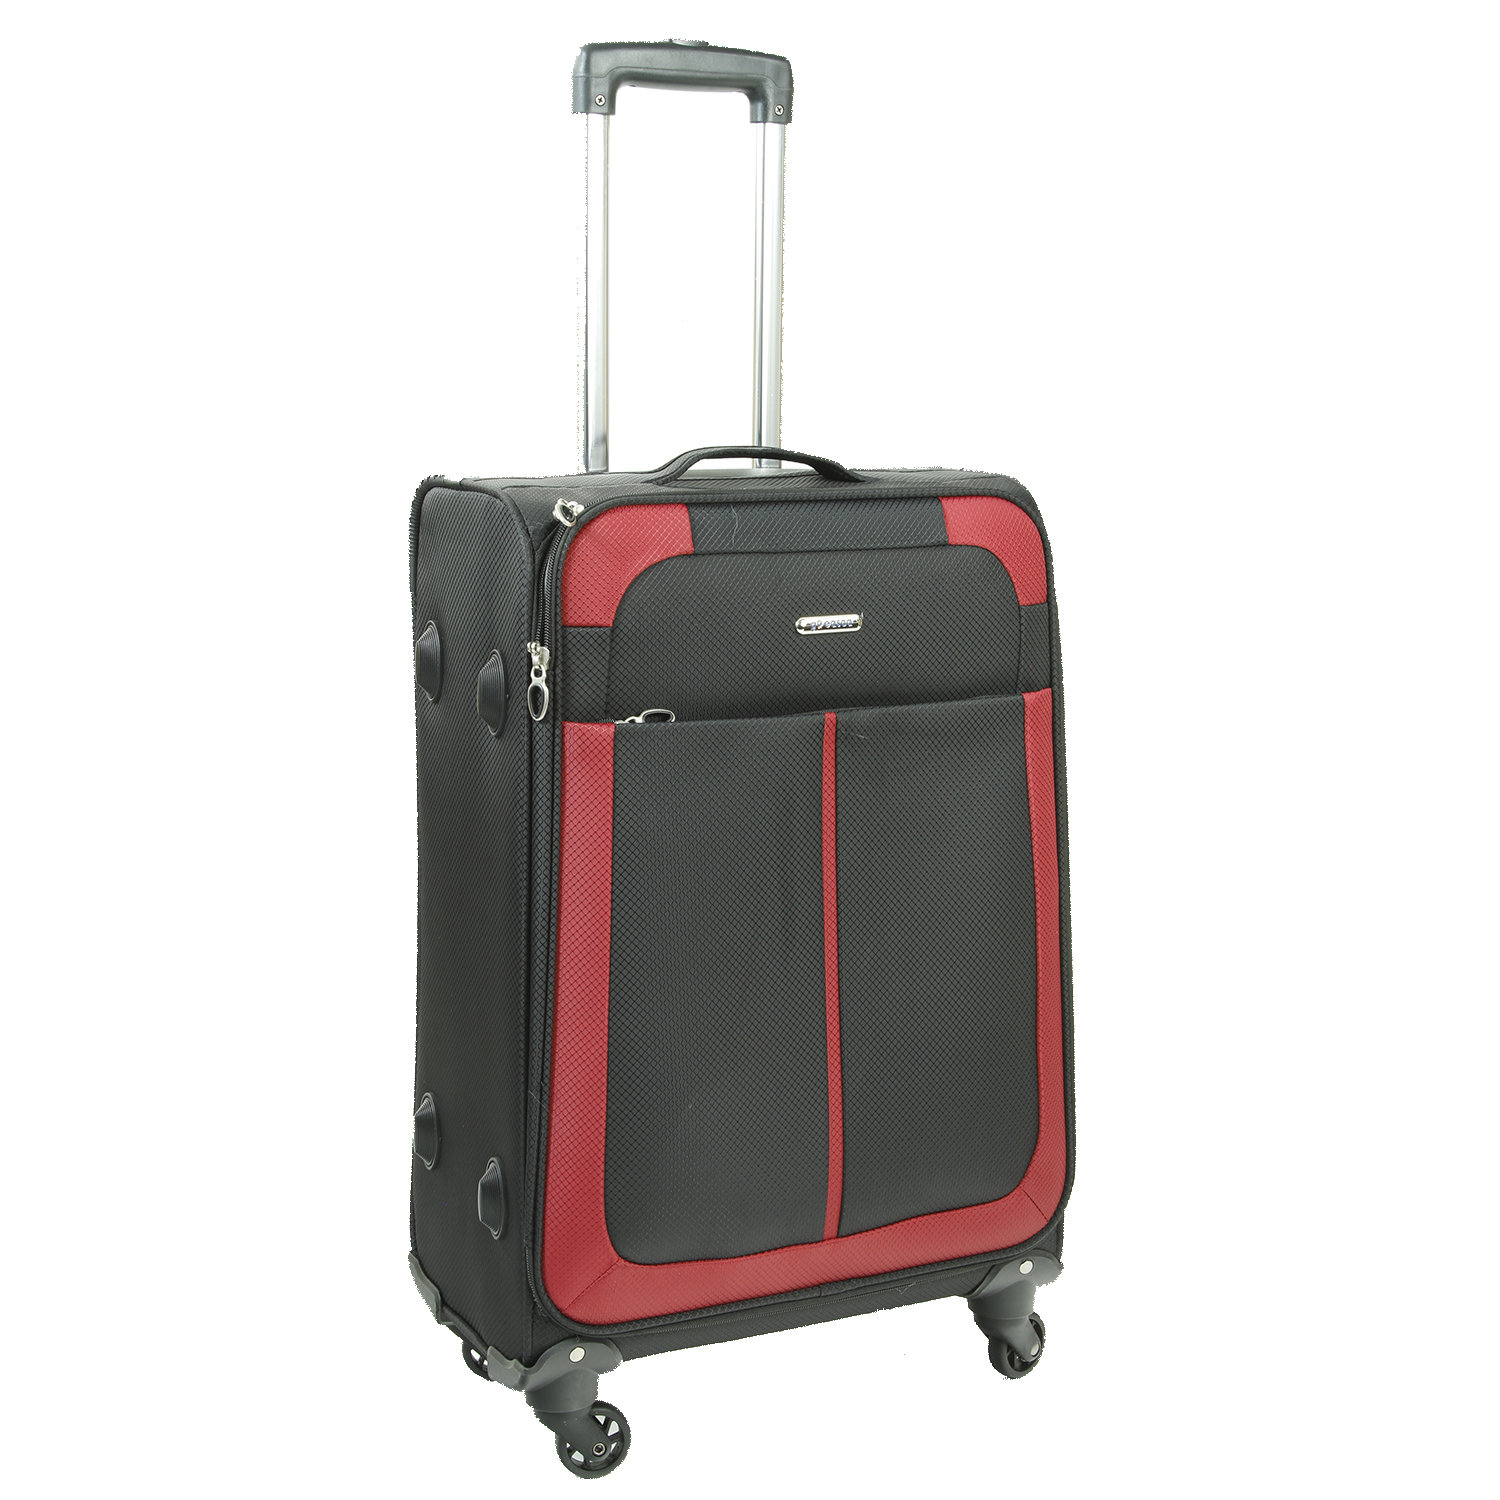 d7f92cd017a6 Medium Black and Red Lightweight Suitcase 076400